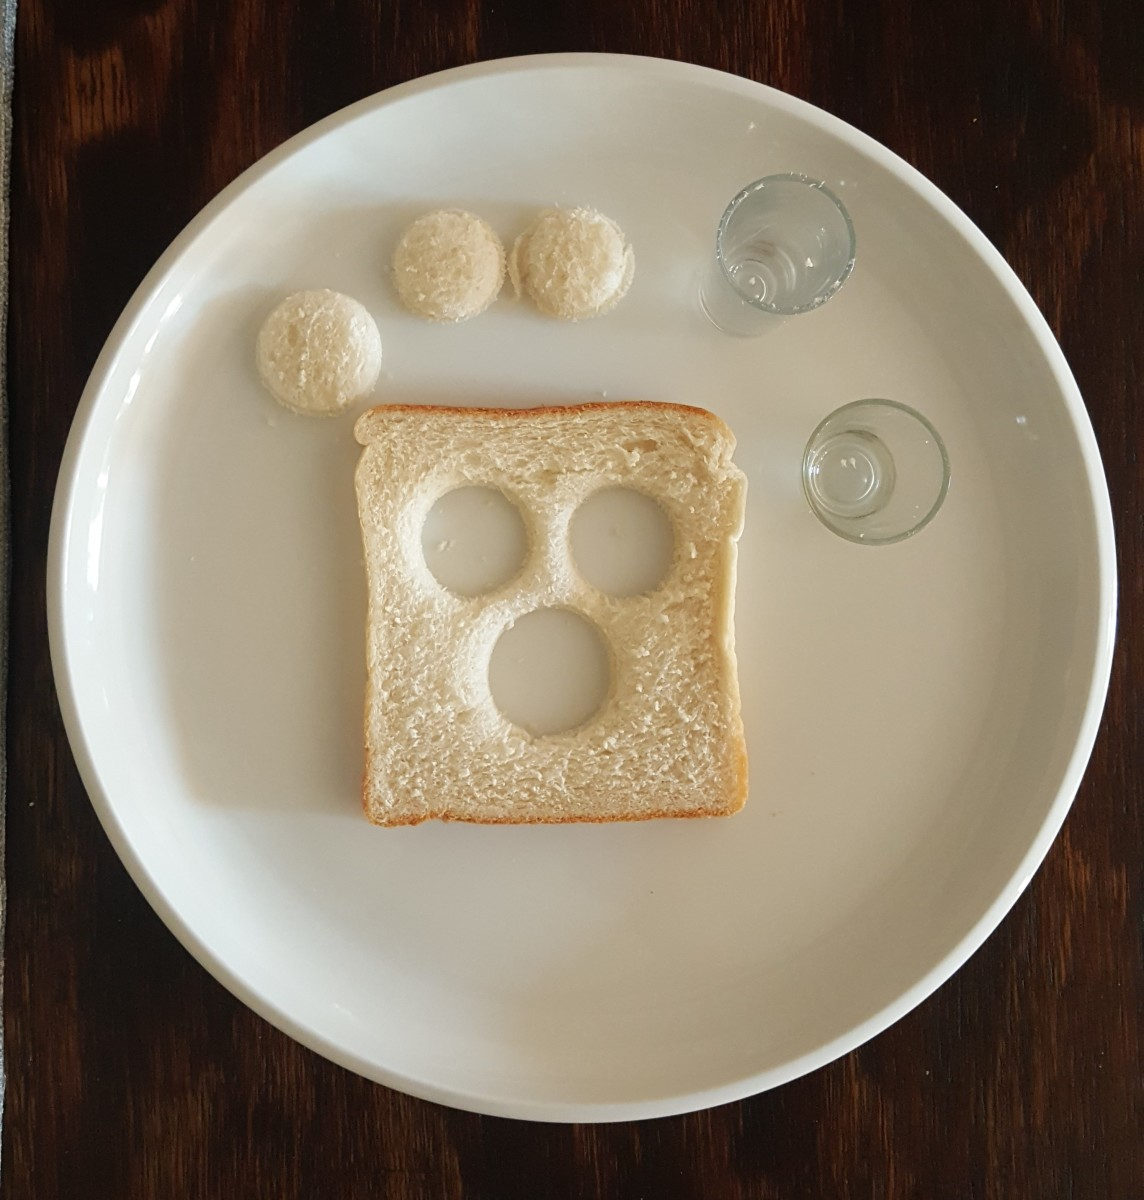 Cut out 3 circles in the shape of eyes and a nose in a slice of bread.